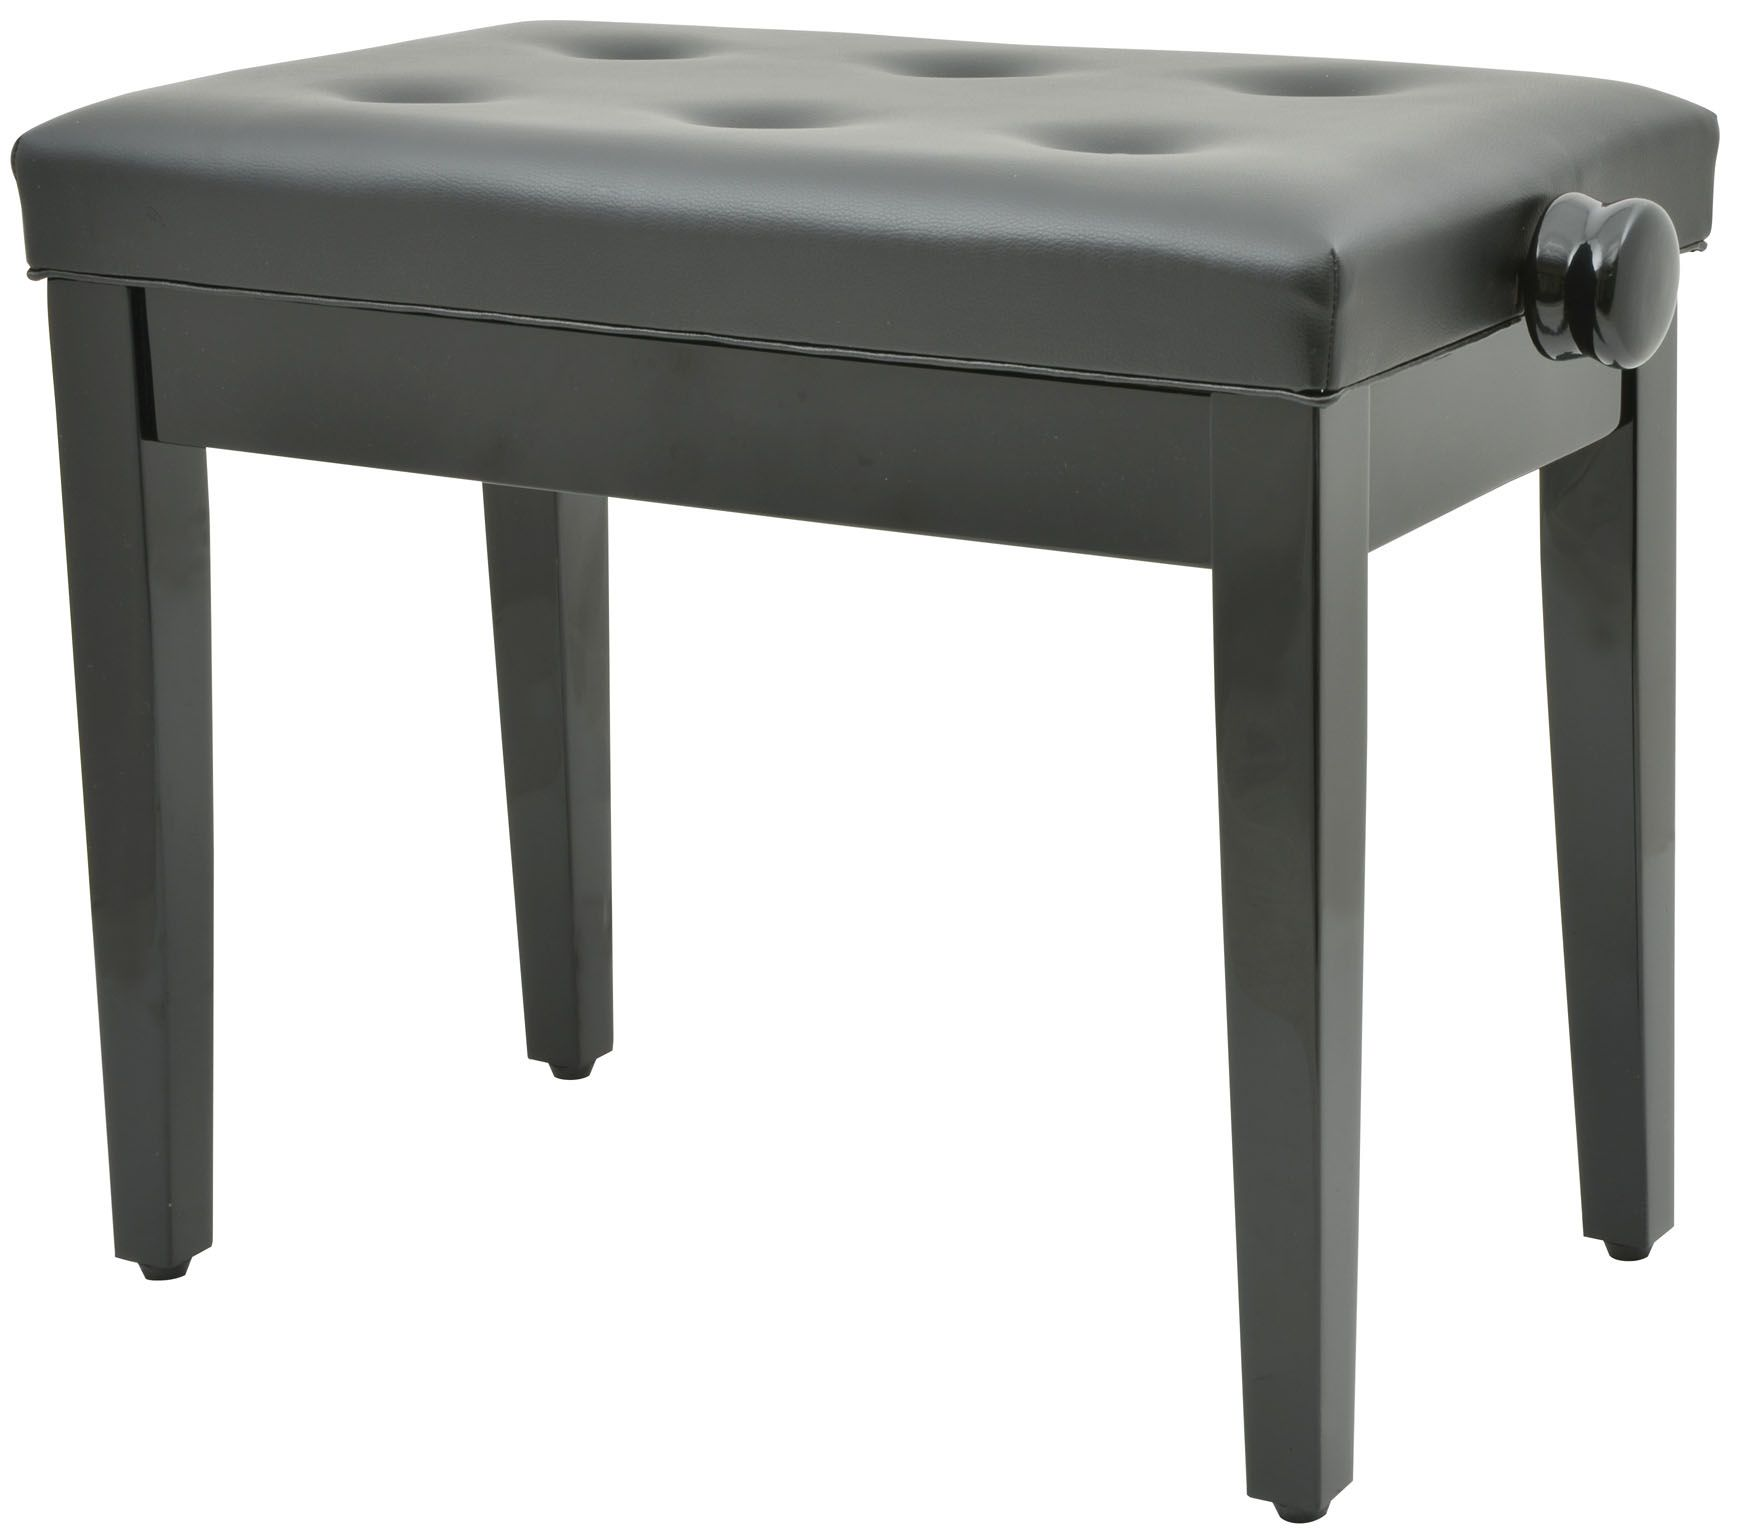 Piano Keyboard Bench Stool Seat In Black 180 250uk